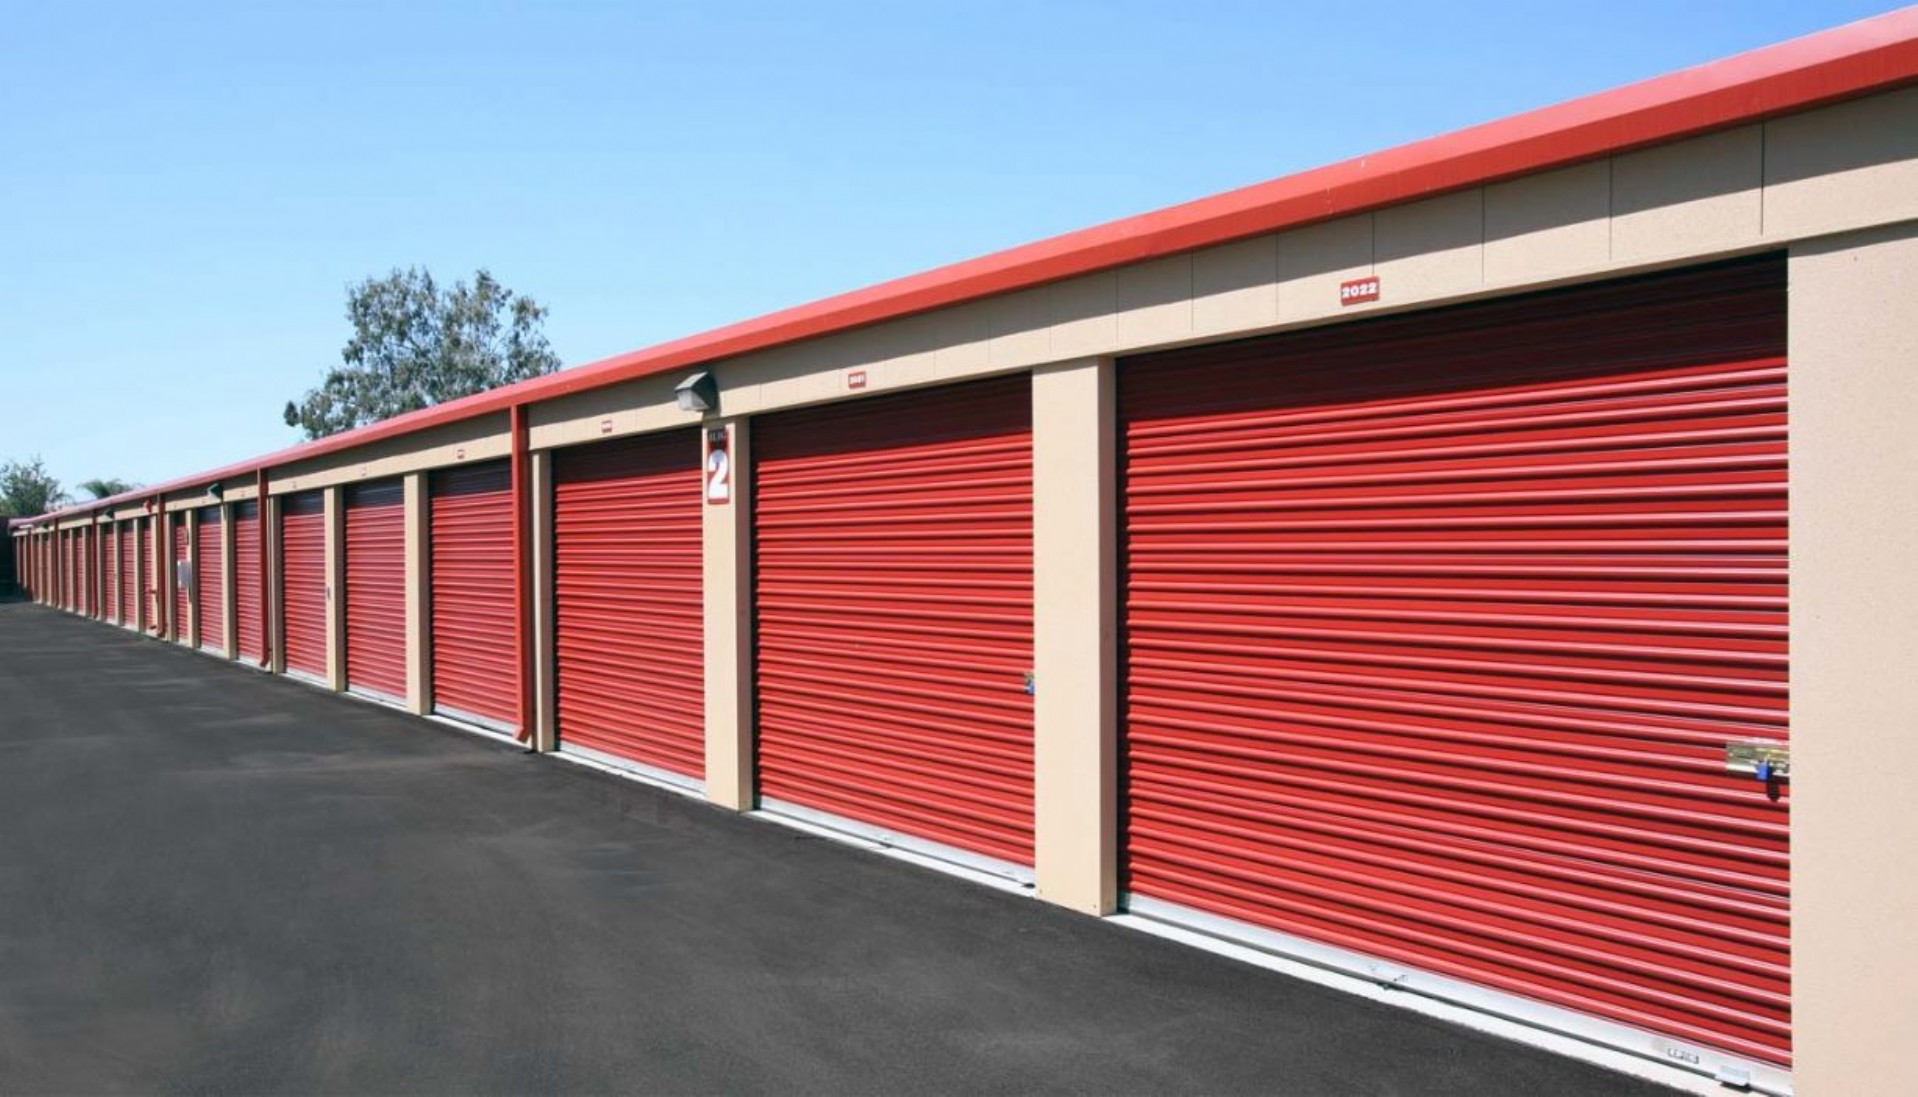 Row of garage sized storage units with rollup doors